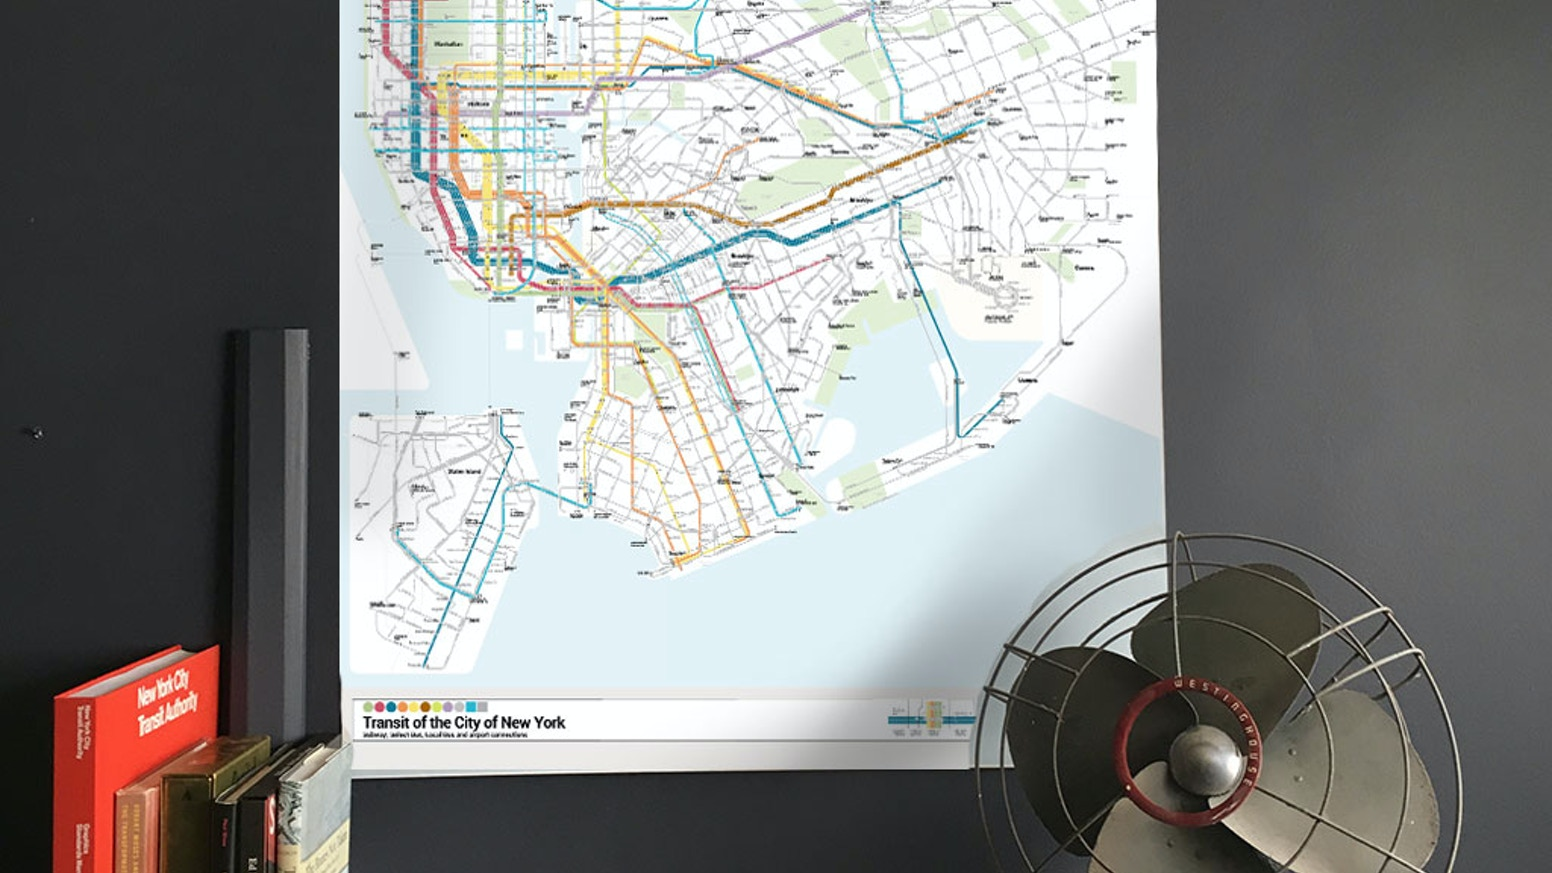 Basic Nyc Subway Map App.Nyc Bullet Map One Map One City By Anthony Denaro Kickstarter